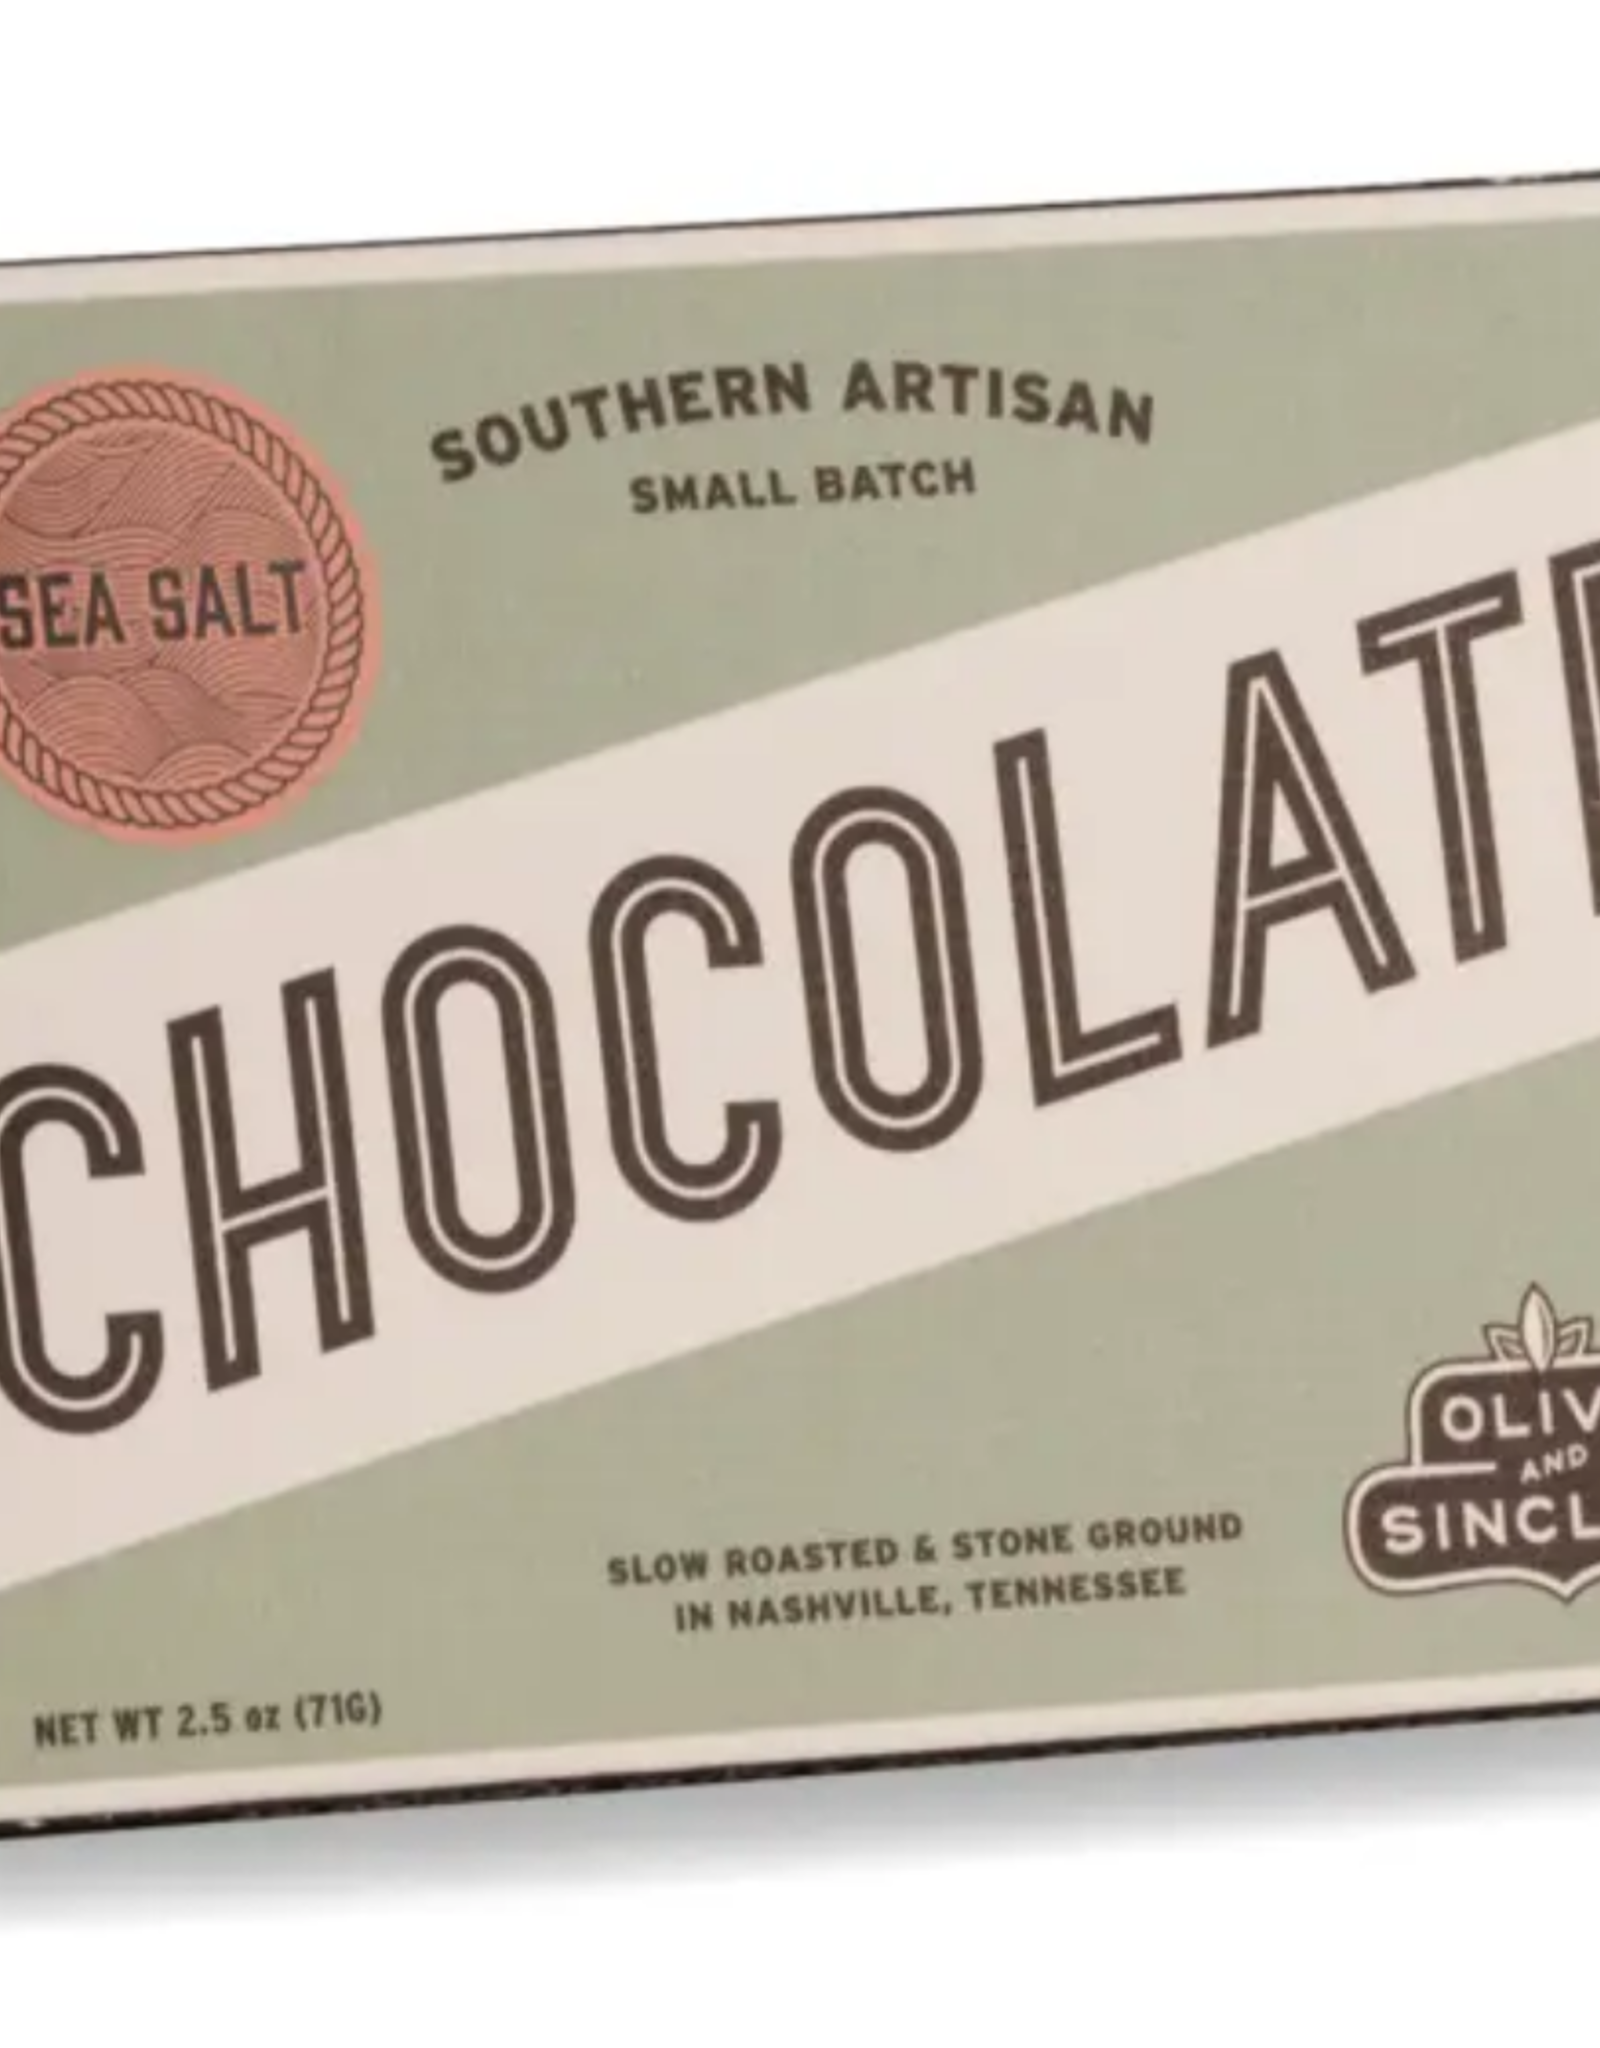 Olive and Sinclair Olive and Sinclair Chocolate